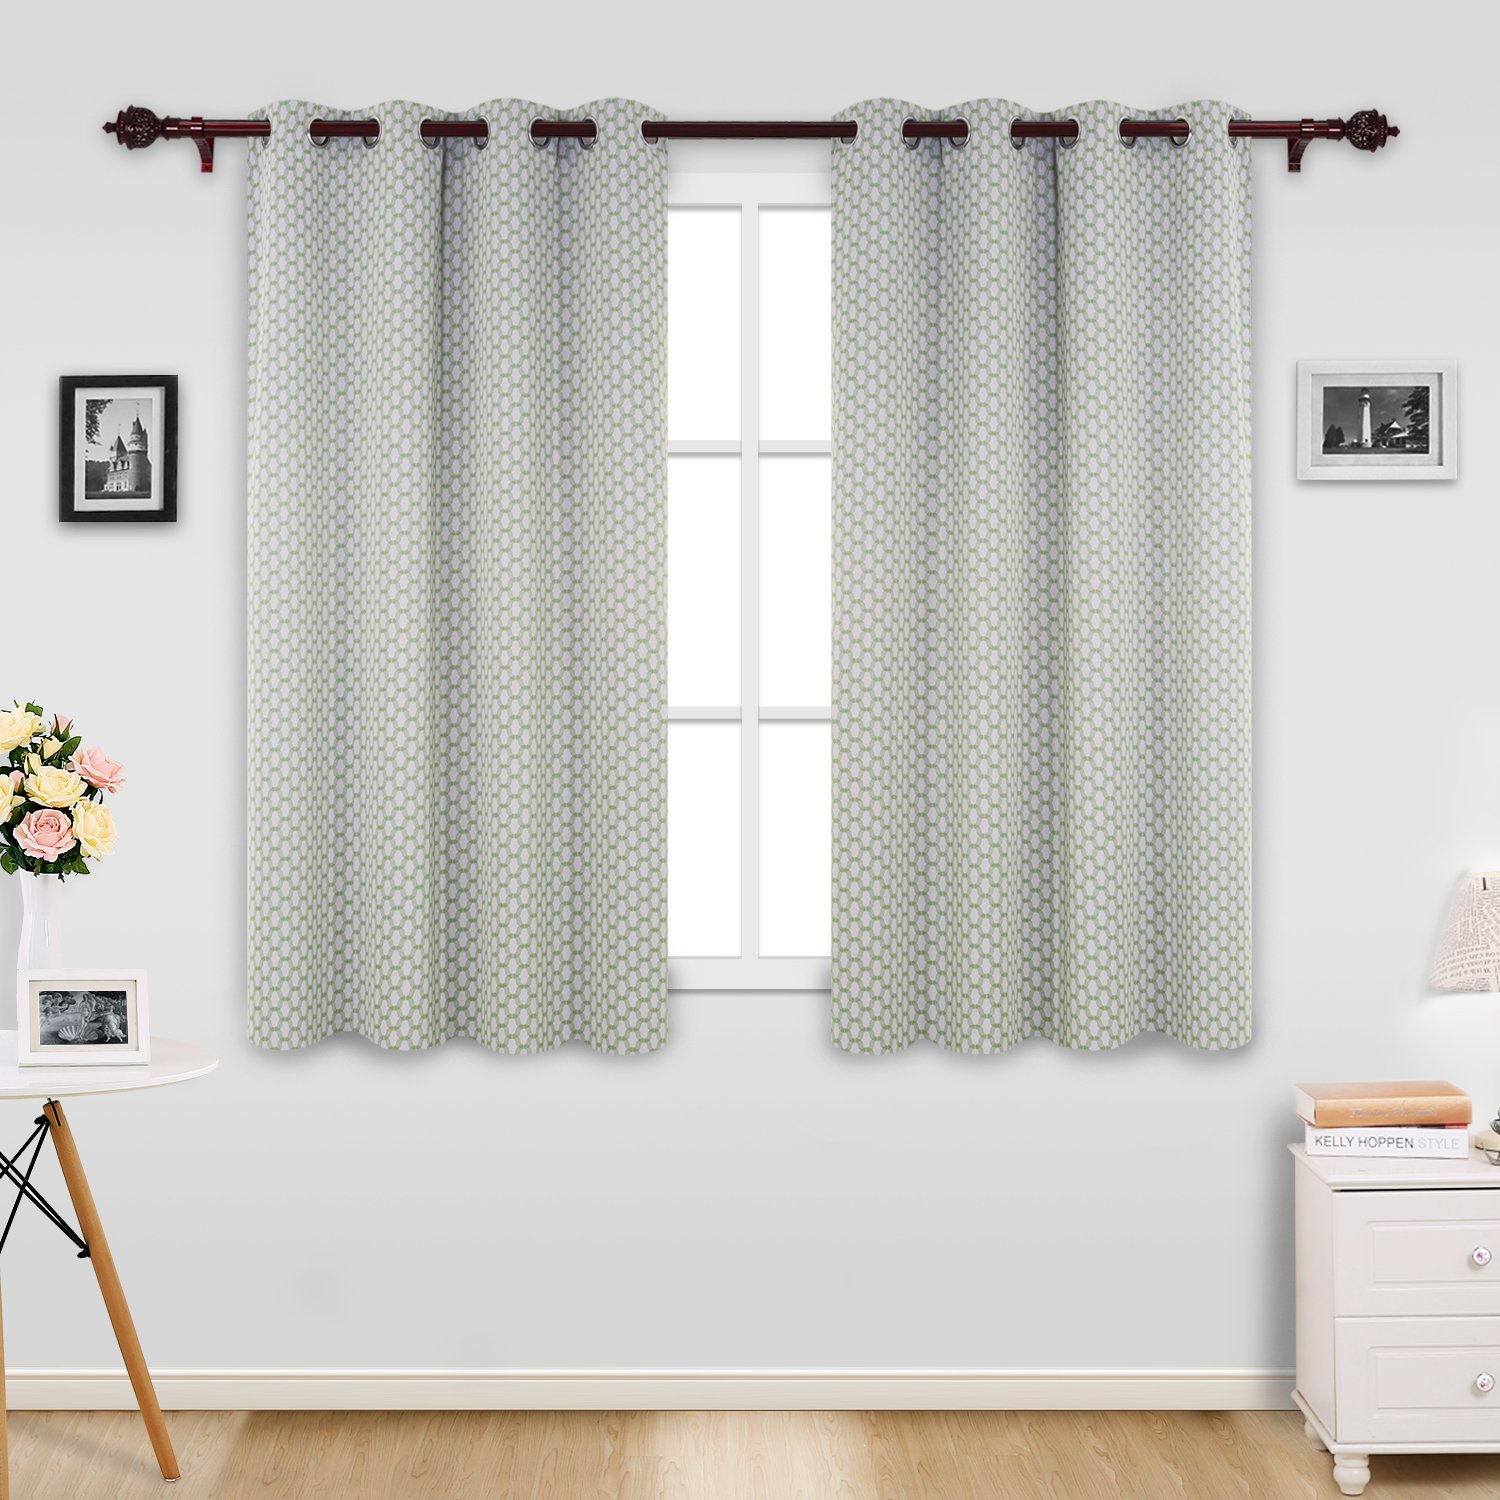 Deconovo Moroccan Designed Energy Efficient Curtains Grommet Hotel Qulity Green Blackout Curtains for Living Room 52x63 Inch 2 Panels